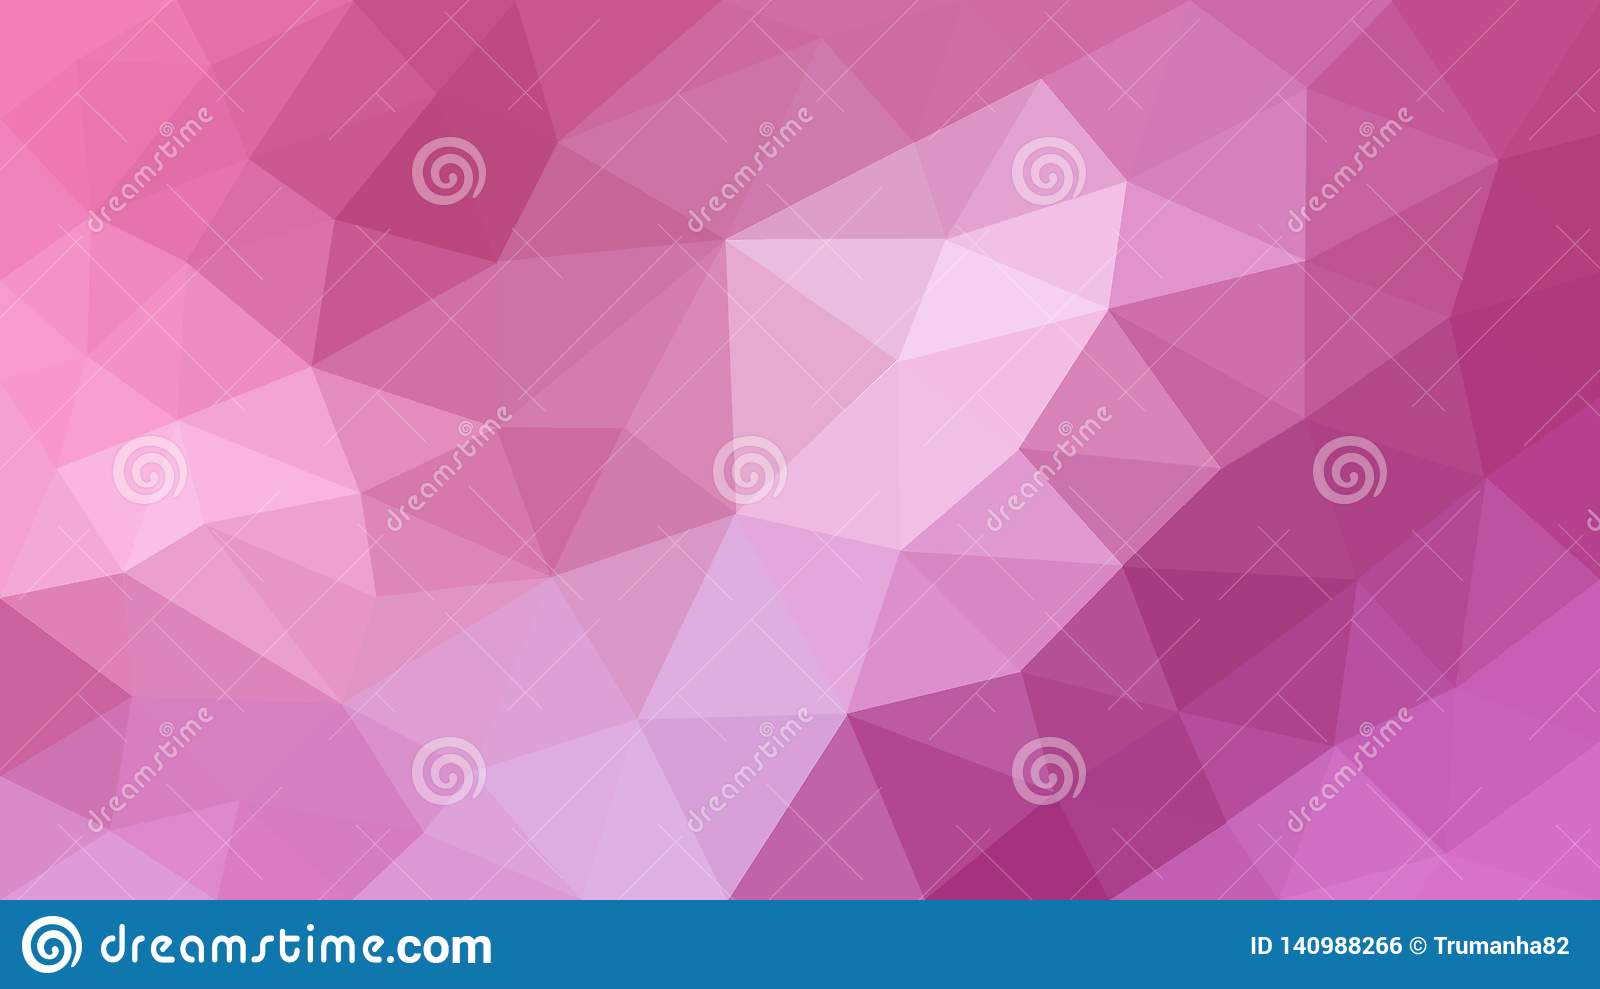 Pink Polygonal Texture for Abstract Background